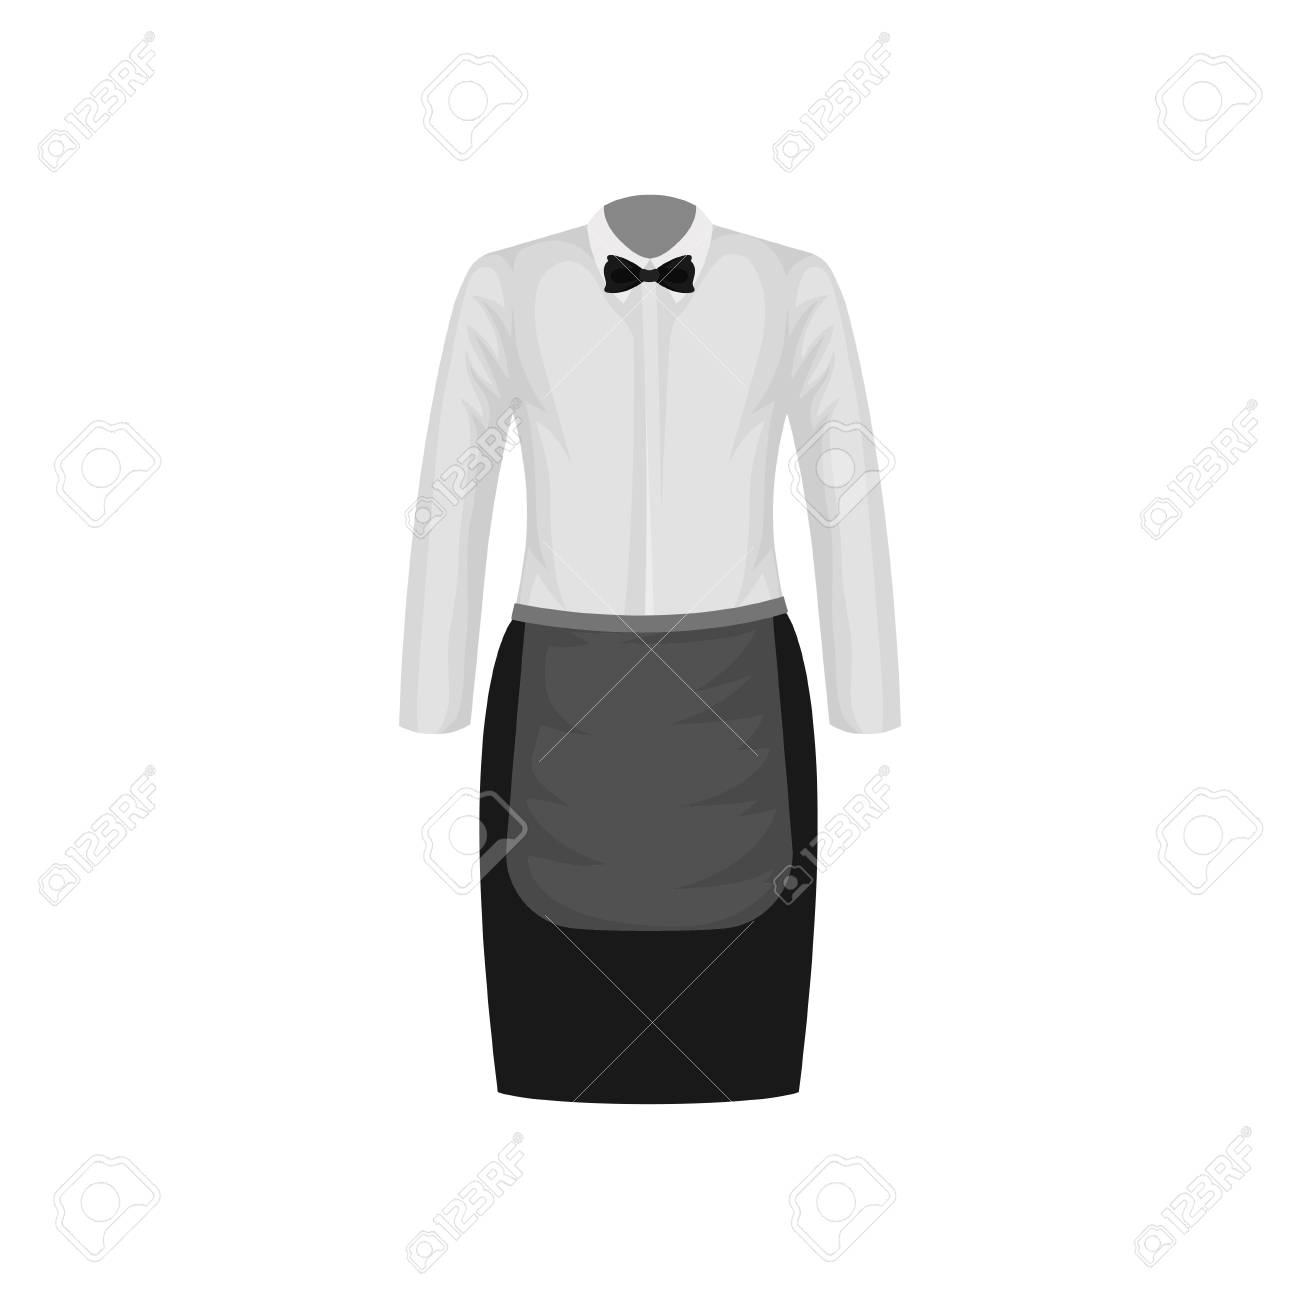 Waitress Uniform White Shirt With Bow Tie And Black Skirt With Royalty Free Cliparts Vectors And Stock Illustration Image 126237166